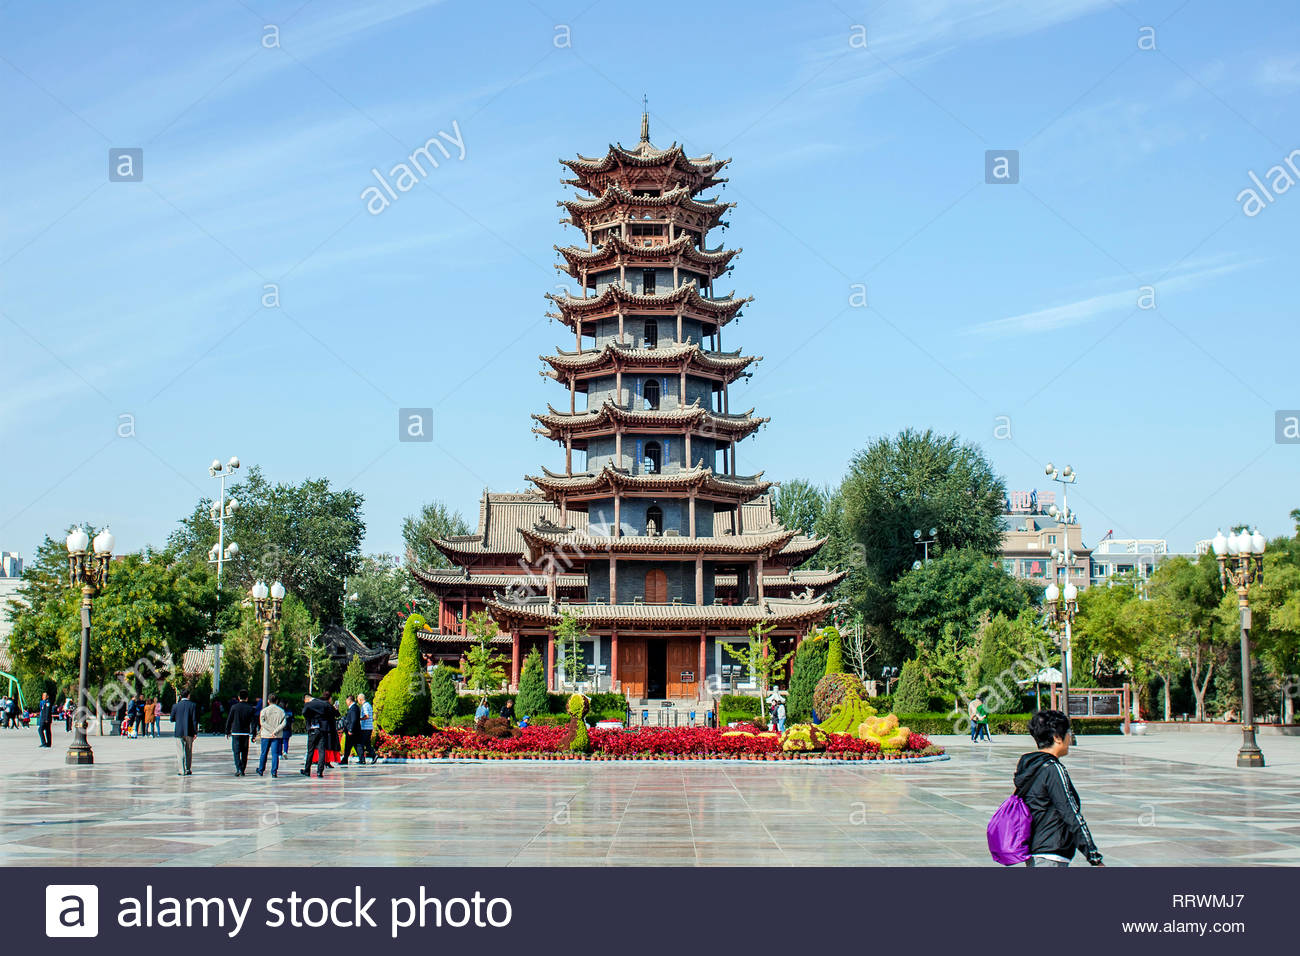 china zhangye september 16 2018 traditional chinese wooden and stone architecture of mu ta si pagoda and central square of the town manjuji RRWMJ7